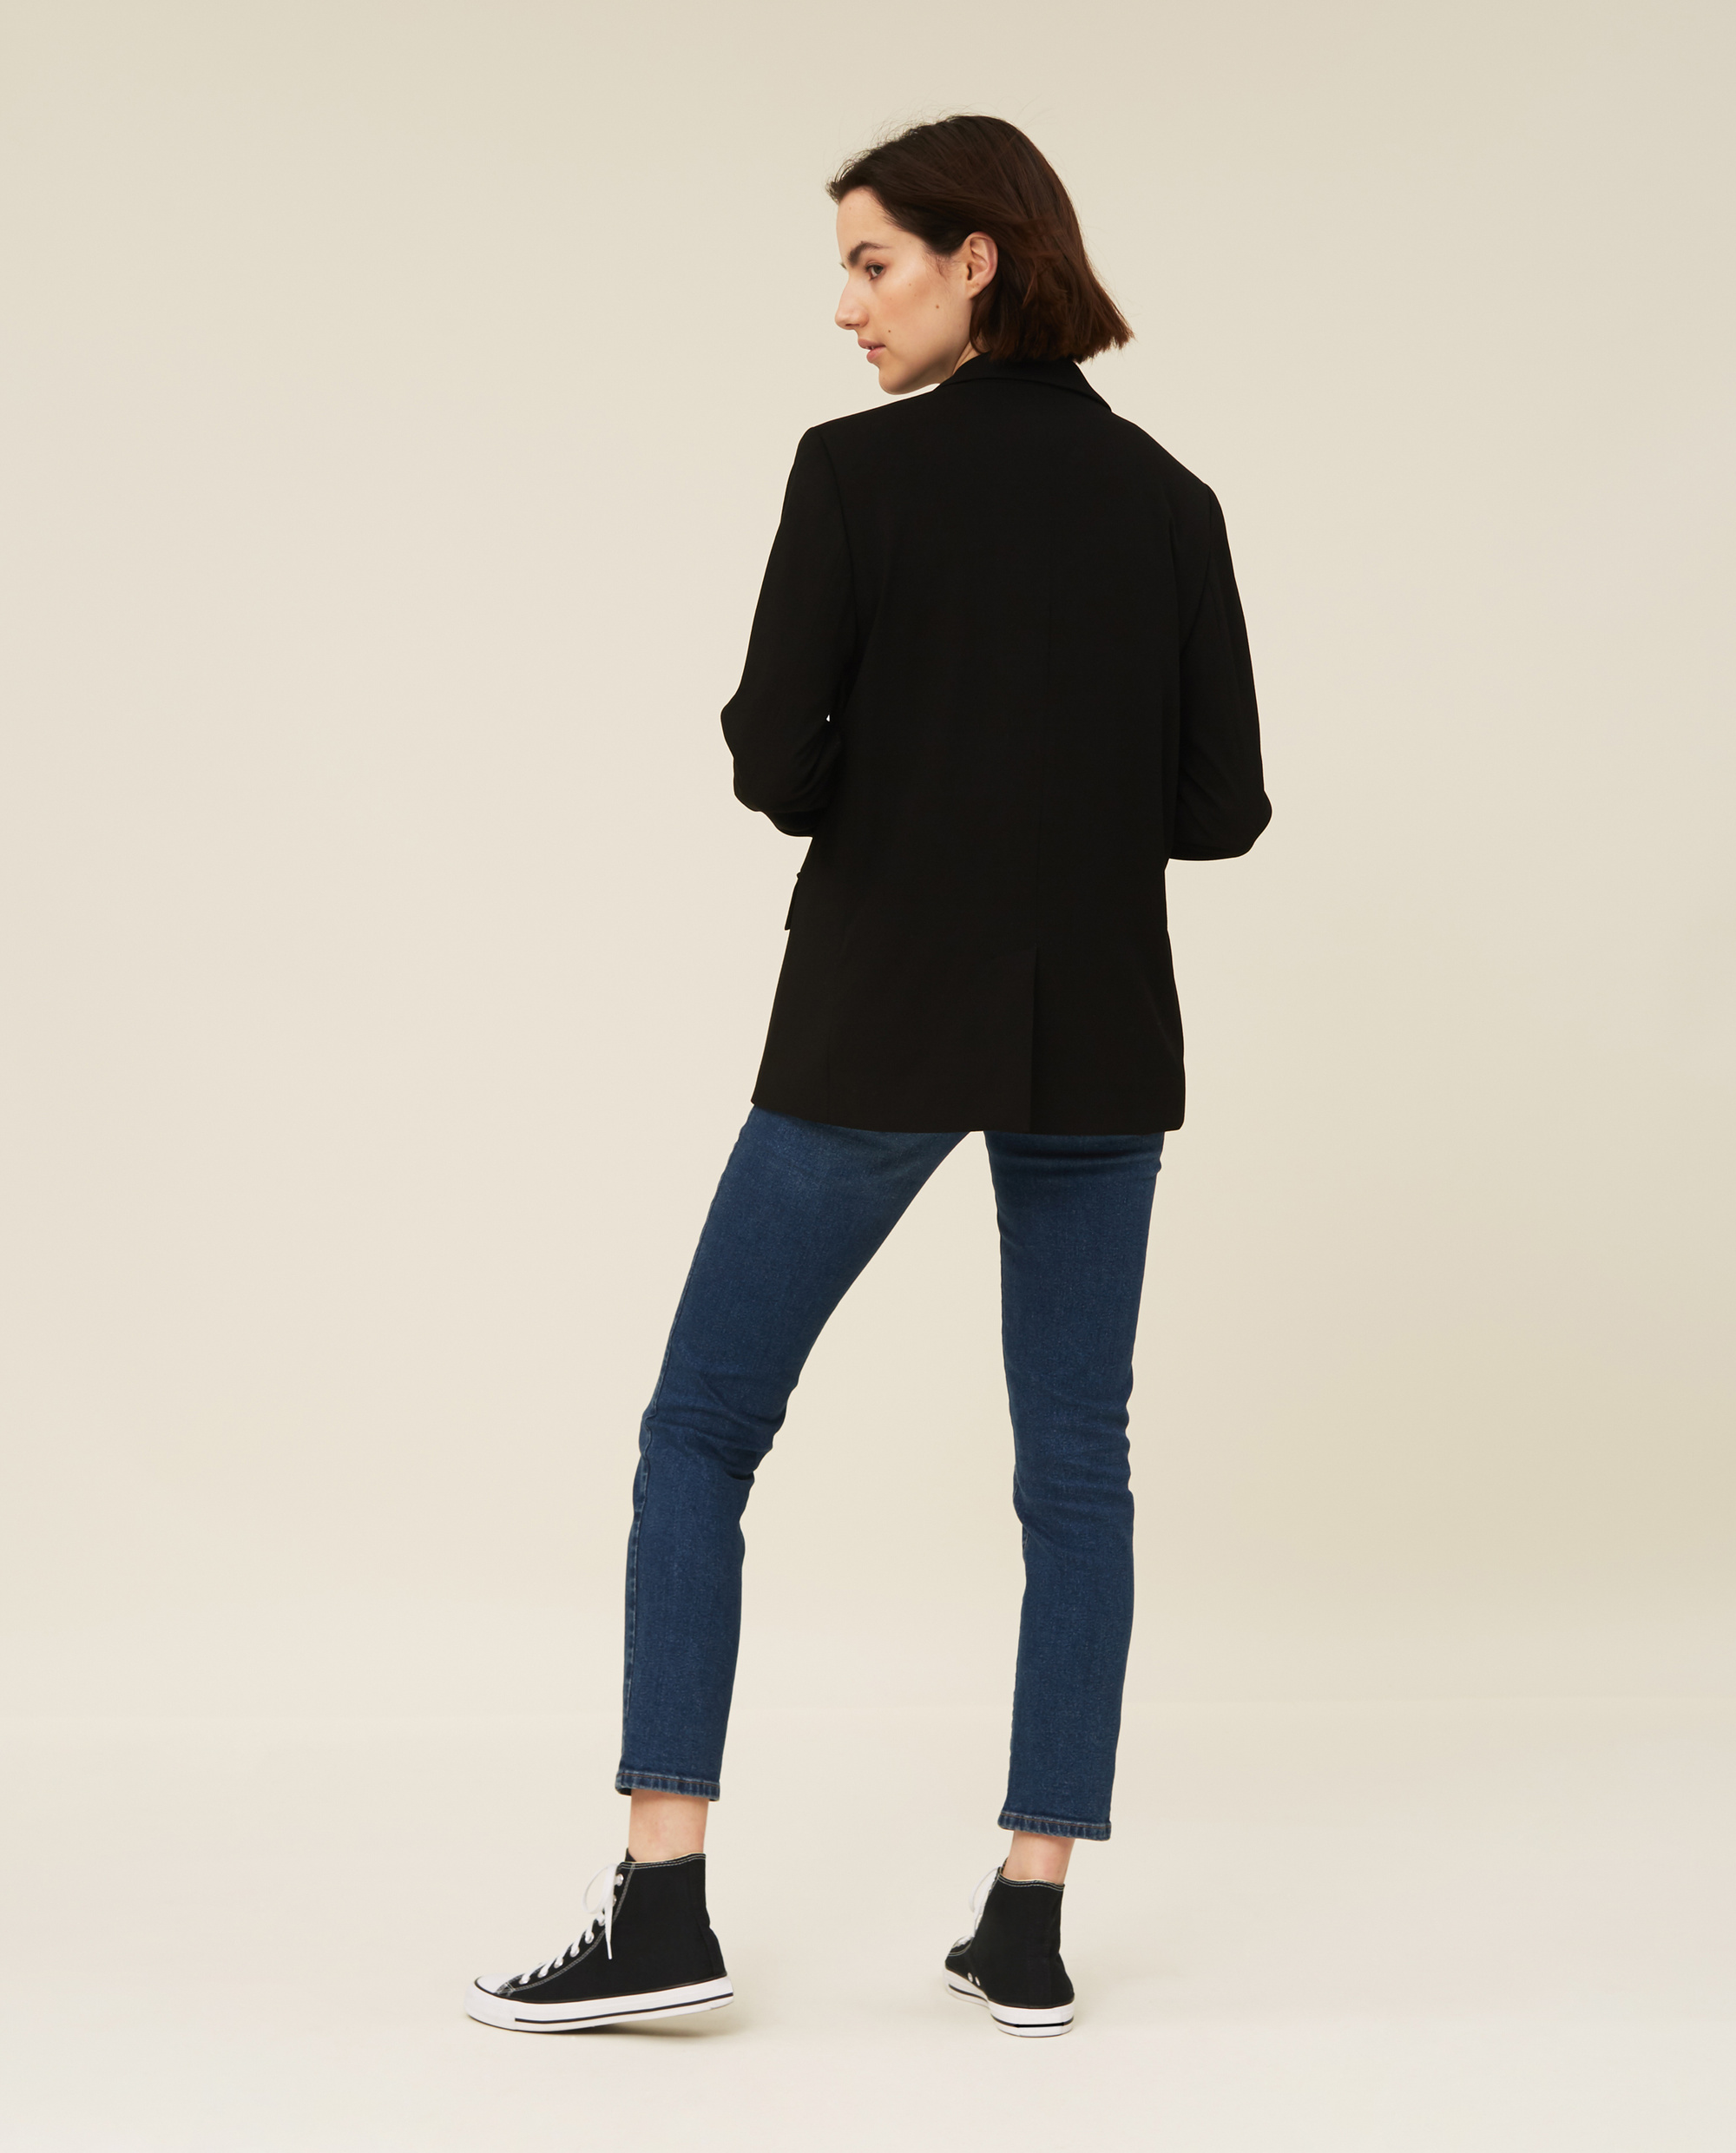 Tiffany Crepe Blazer, Black